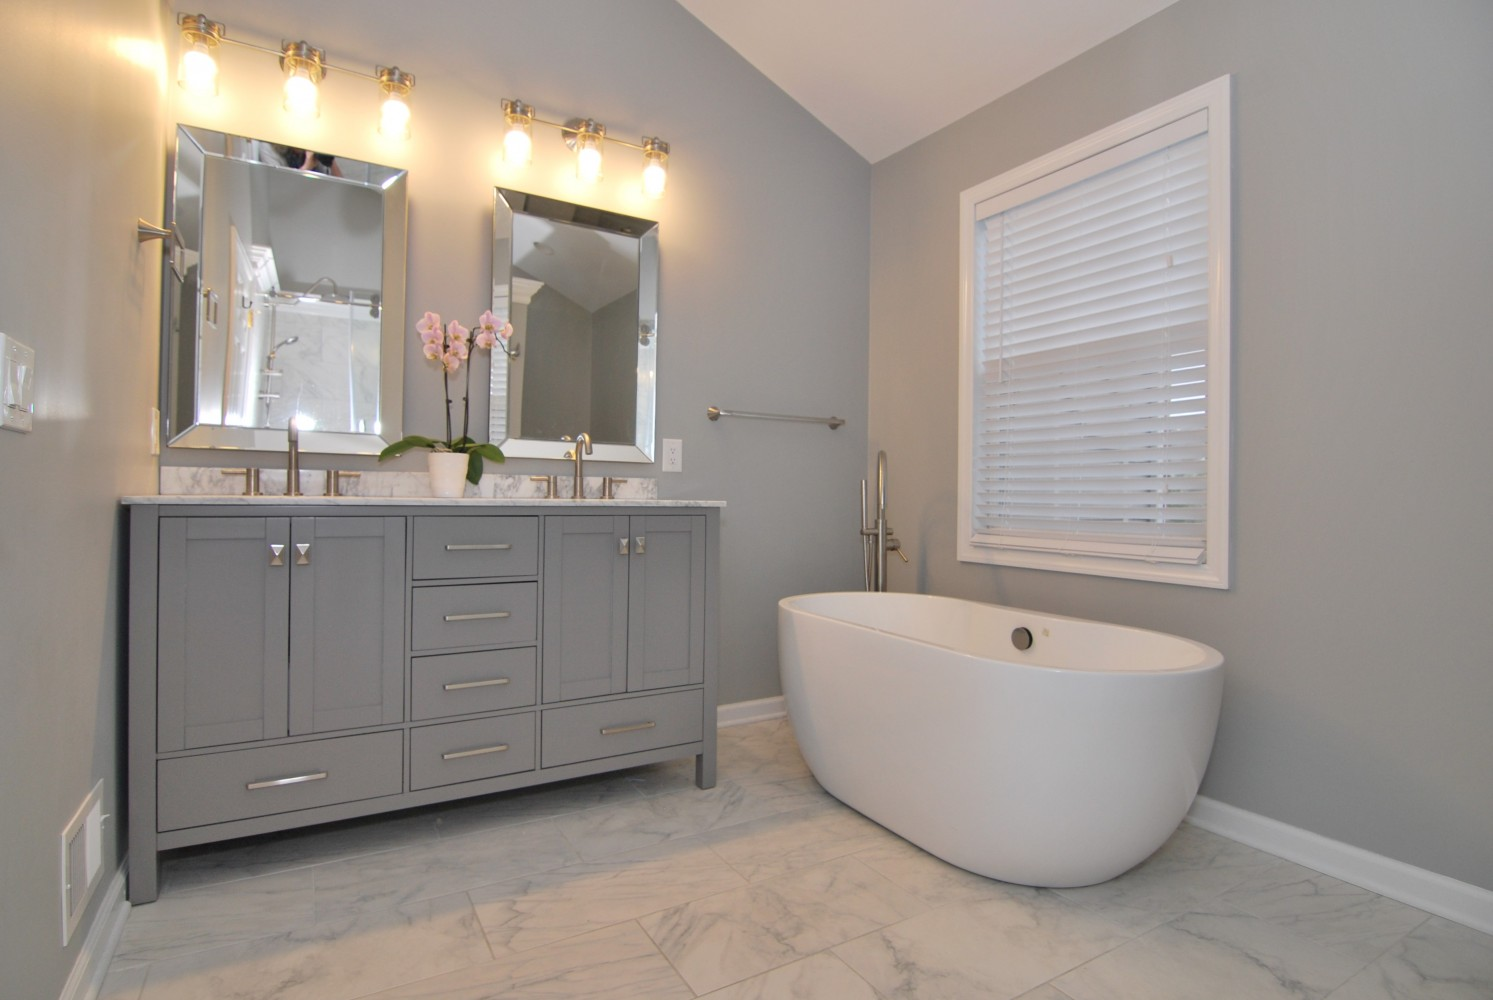 60 in grey Houzz caroline vanity | Pennington NJ | Distinctive Interior Designs